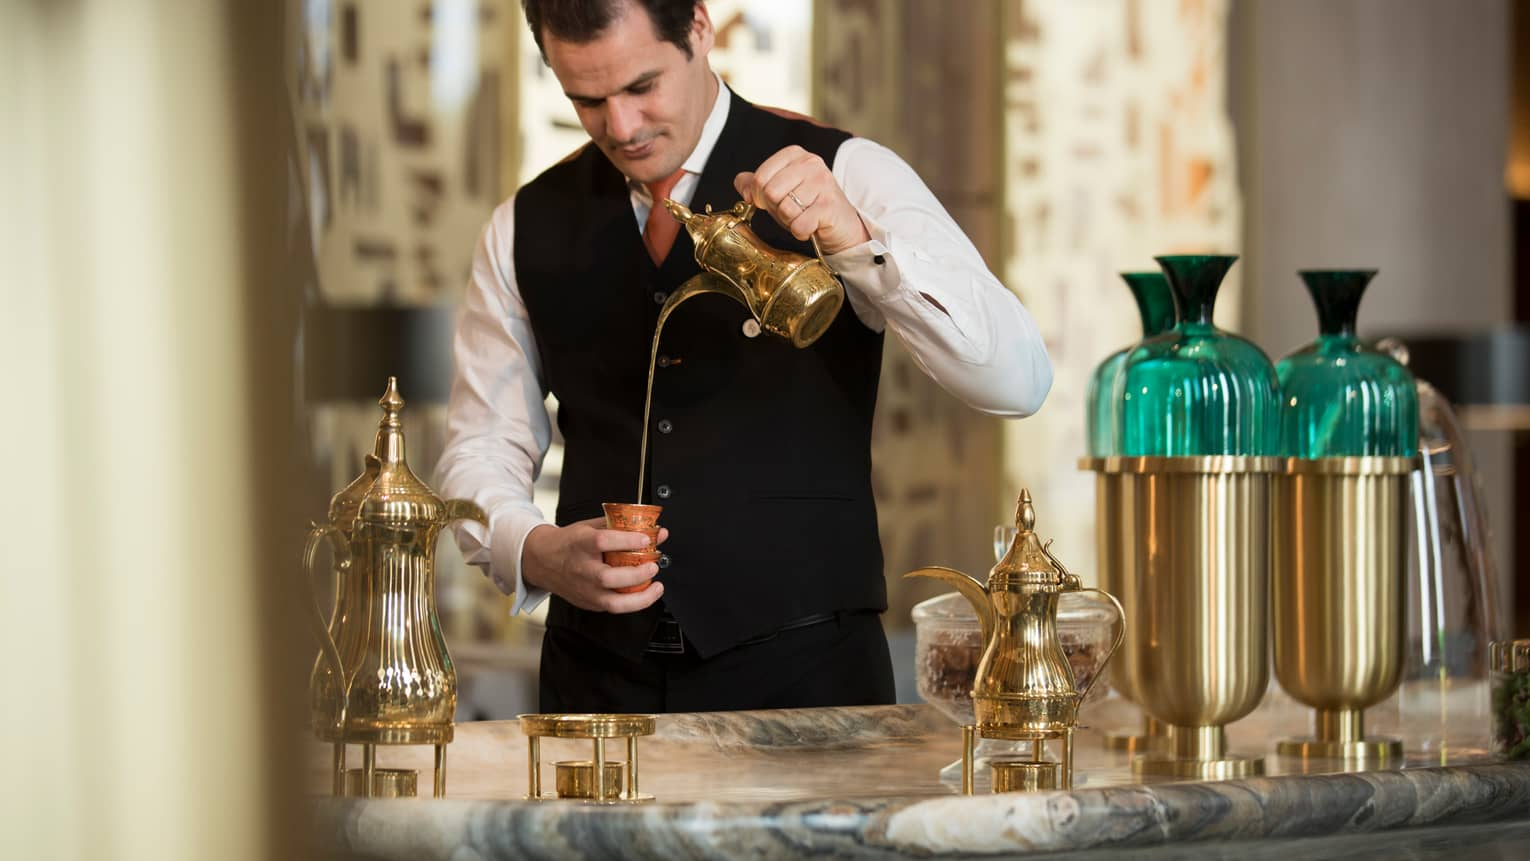 Hotel staff in vest, tie pours tea from brass pot into small cup